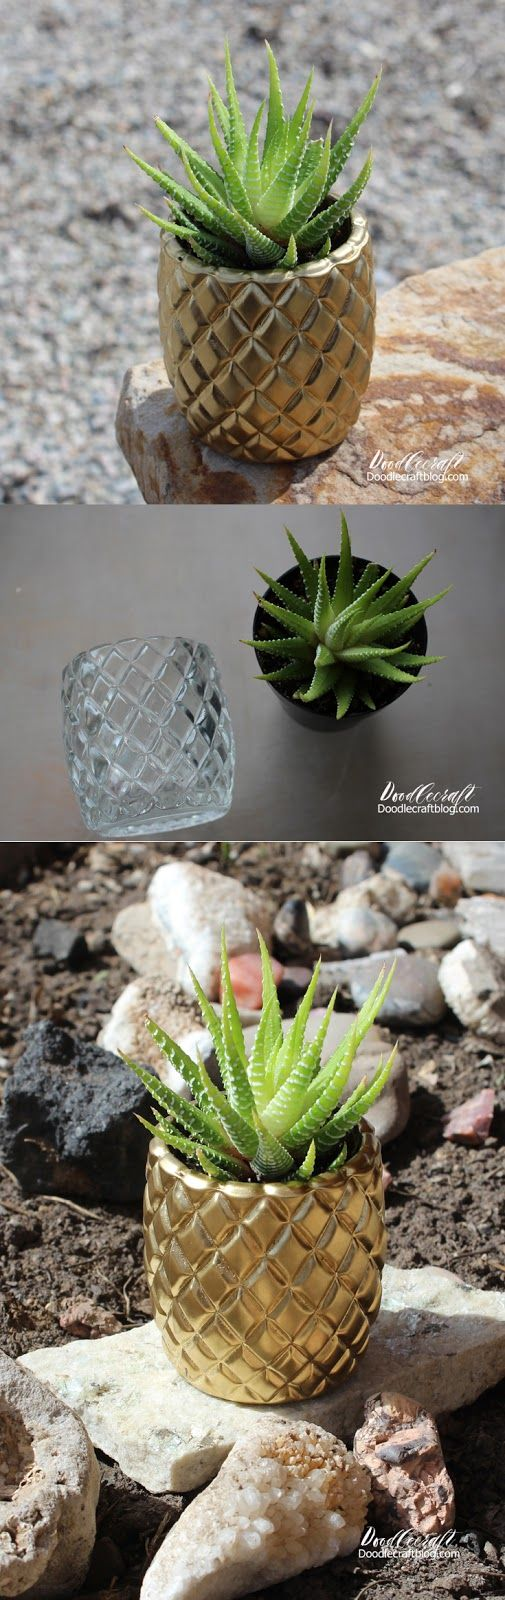 Pineapple Succulent Planter! Such a darling little plant, the perfect gift for Mother's day! It only takes minutes to make! Minus the paint drying time, it takes 15 minutes or less!